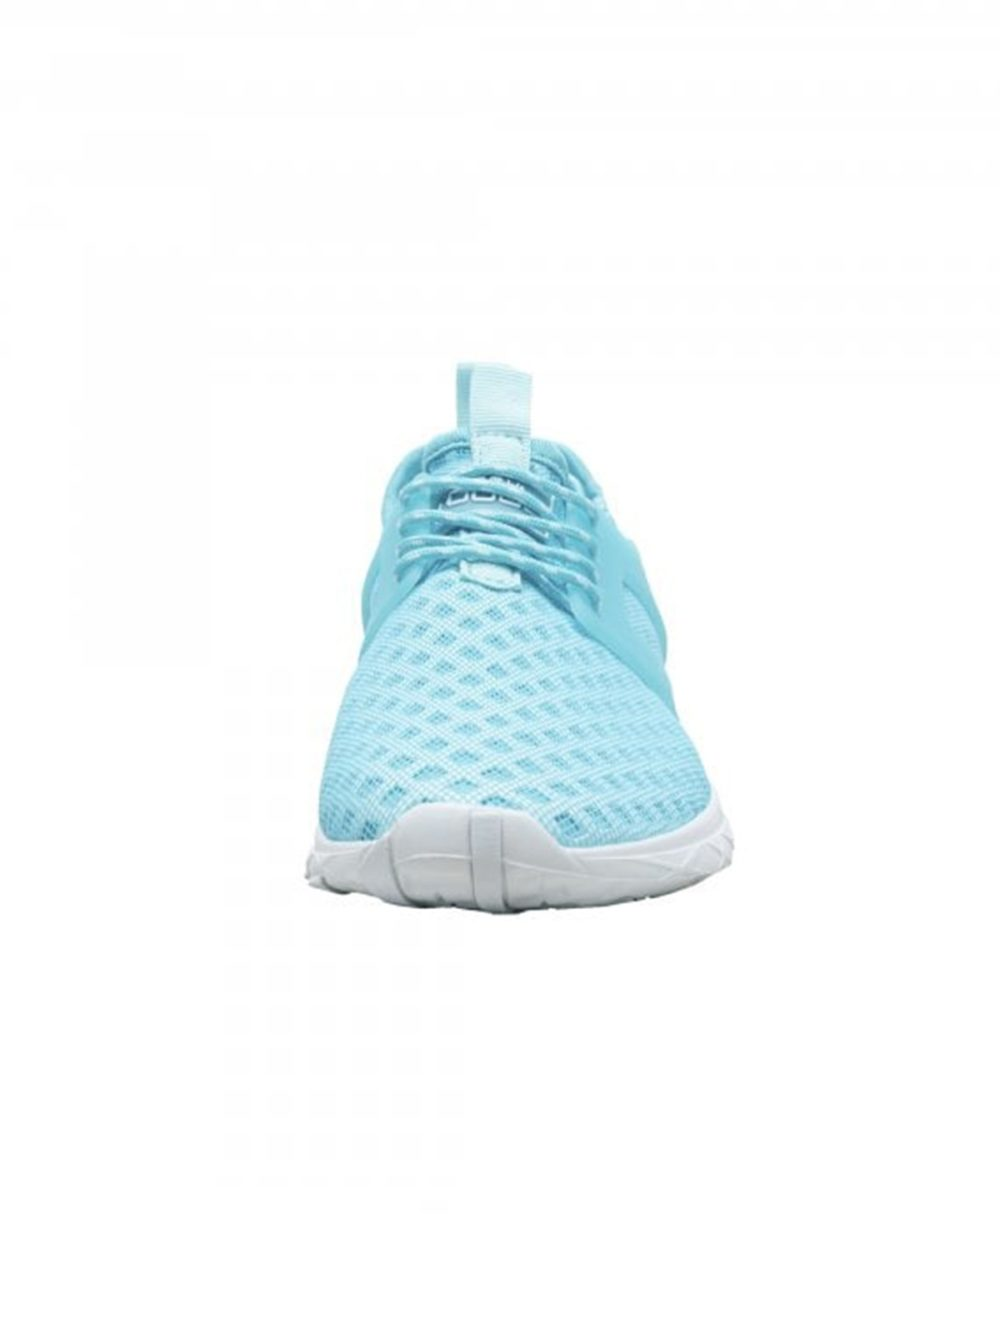 Mistral Airflow Aqua Mesh Hey Dude Shoes Katie Kerr Women's Clothing